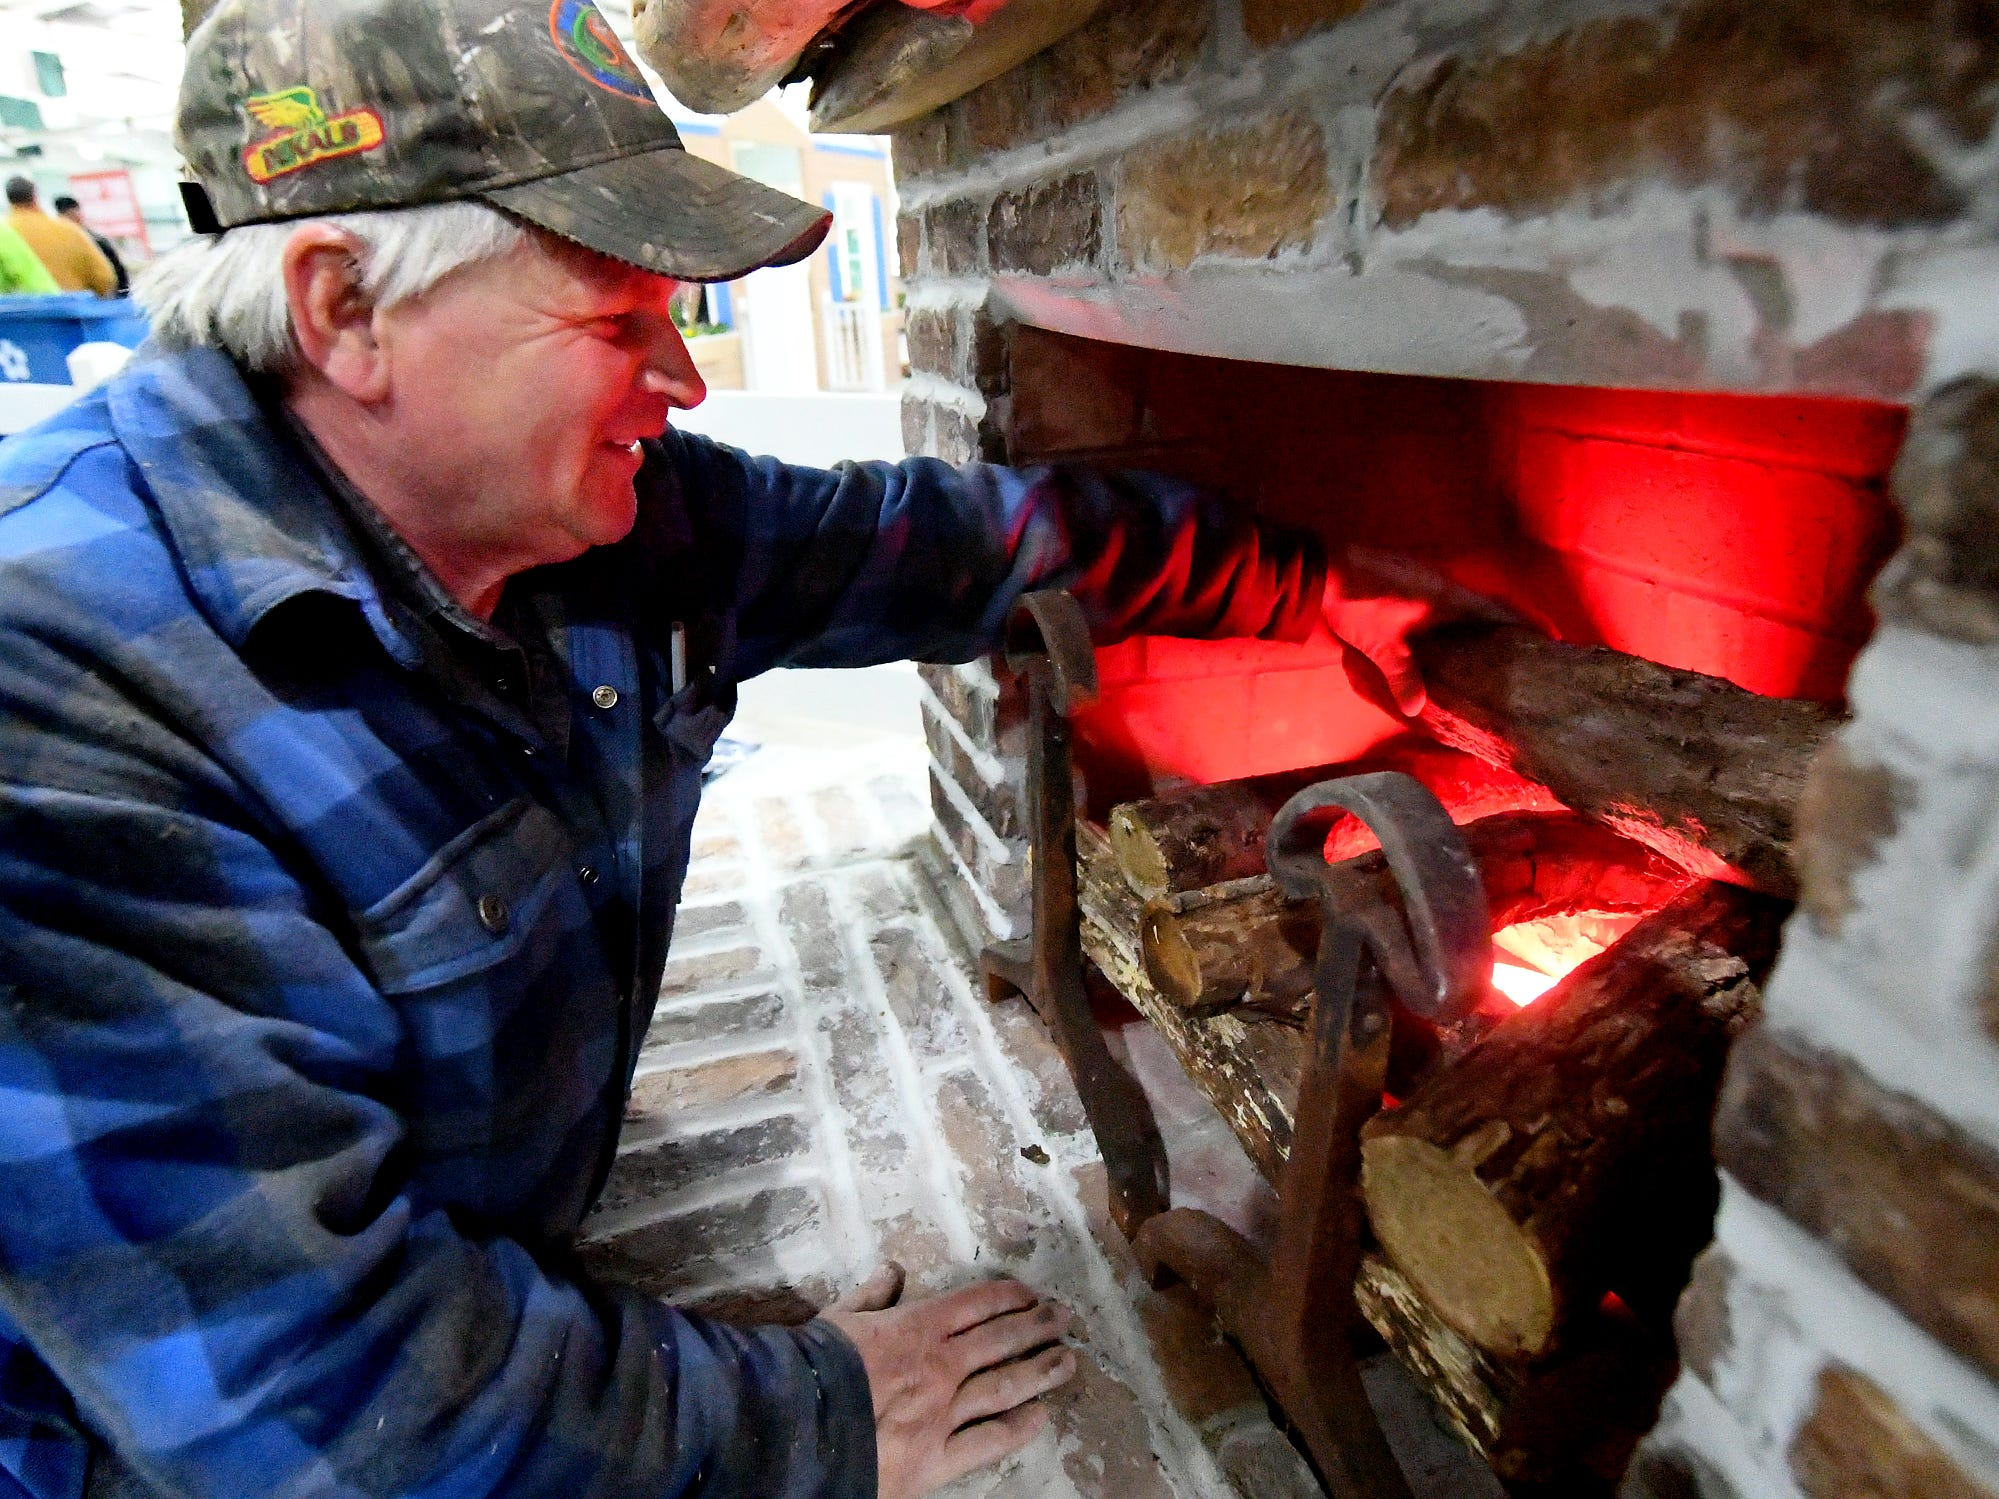 """Steve Bupp, co-owner of Cross Creek Farm in Codorus Township, prepares a portion of the company's exhibit at the PA Garden Show of York Wednesday, Feb. 27, 2019. The show, themed """"Flowers on Parade,"""" is in Memorial Hall at the York Expo Center March 1-3. Hours Friday and Saturday are 10 a.m. to 8 p.m., and Sunday 10 a.m. to 5 p.m. Admission for adults is $10. Children are free with multi-day passes and and senior discounts offered. Bill Kalina photo"""